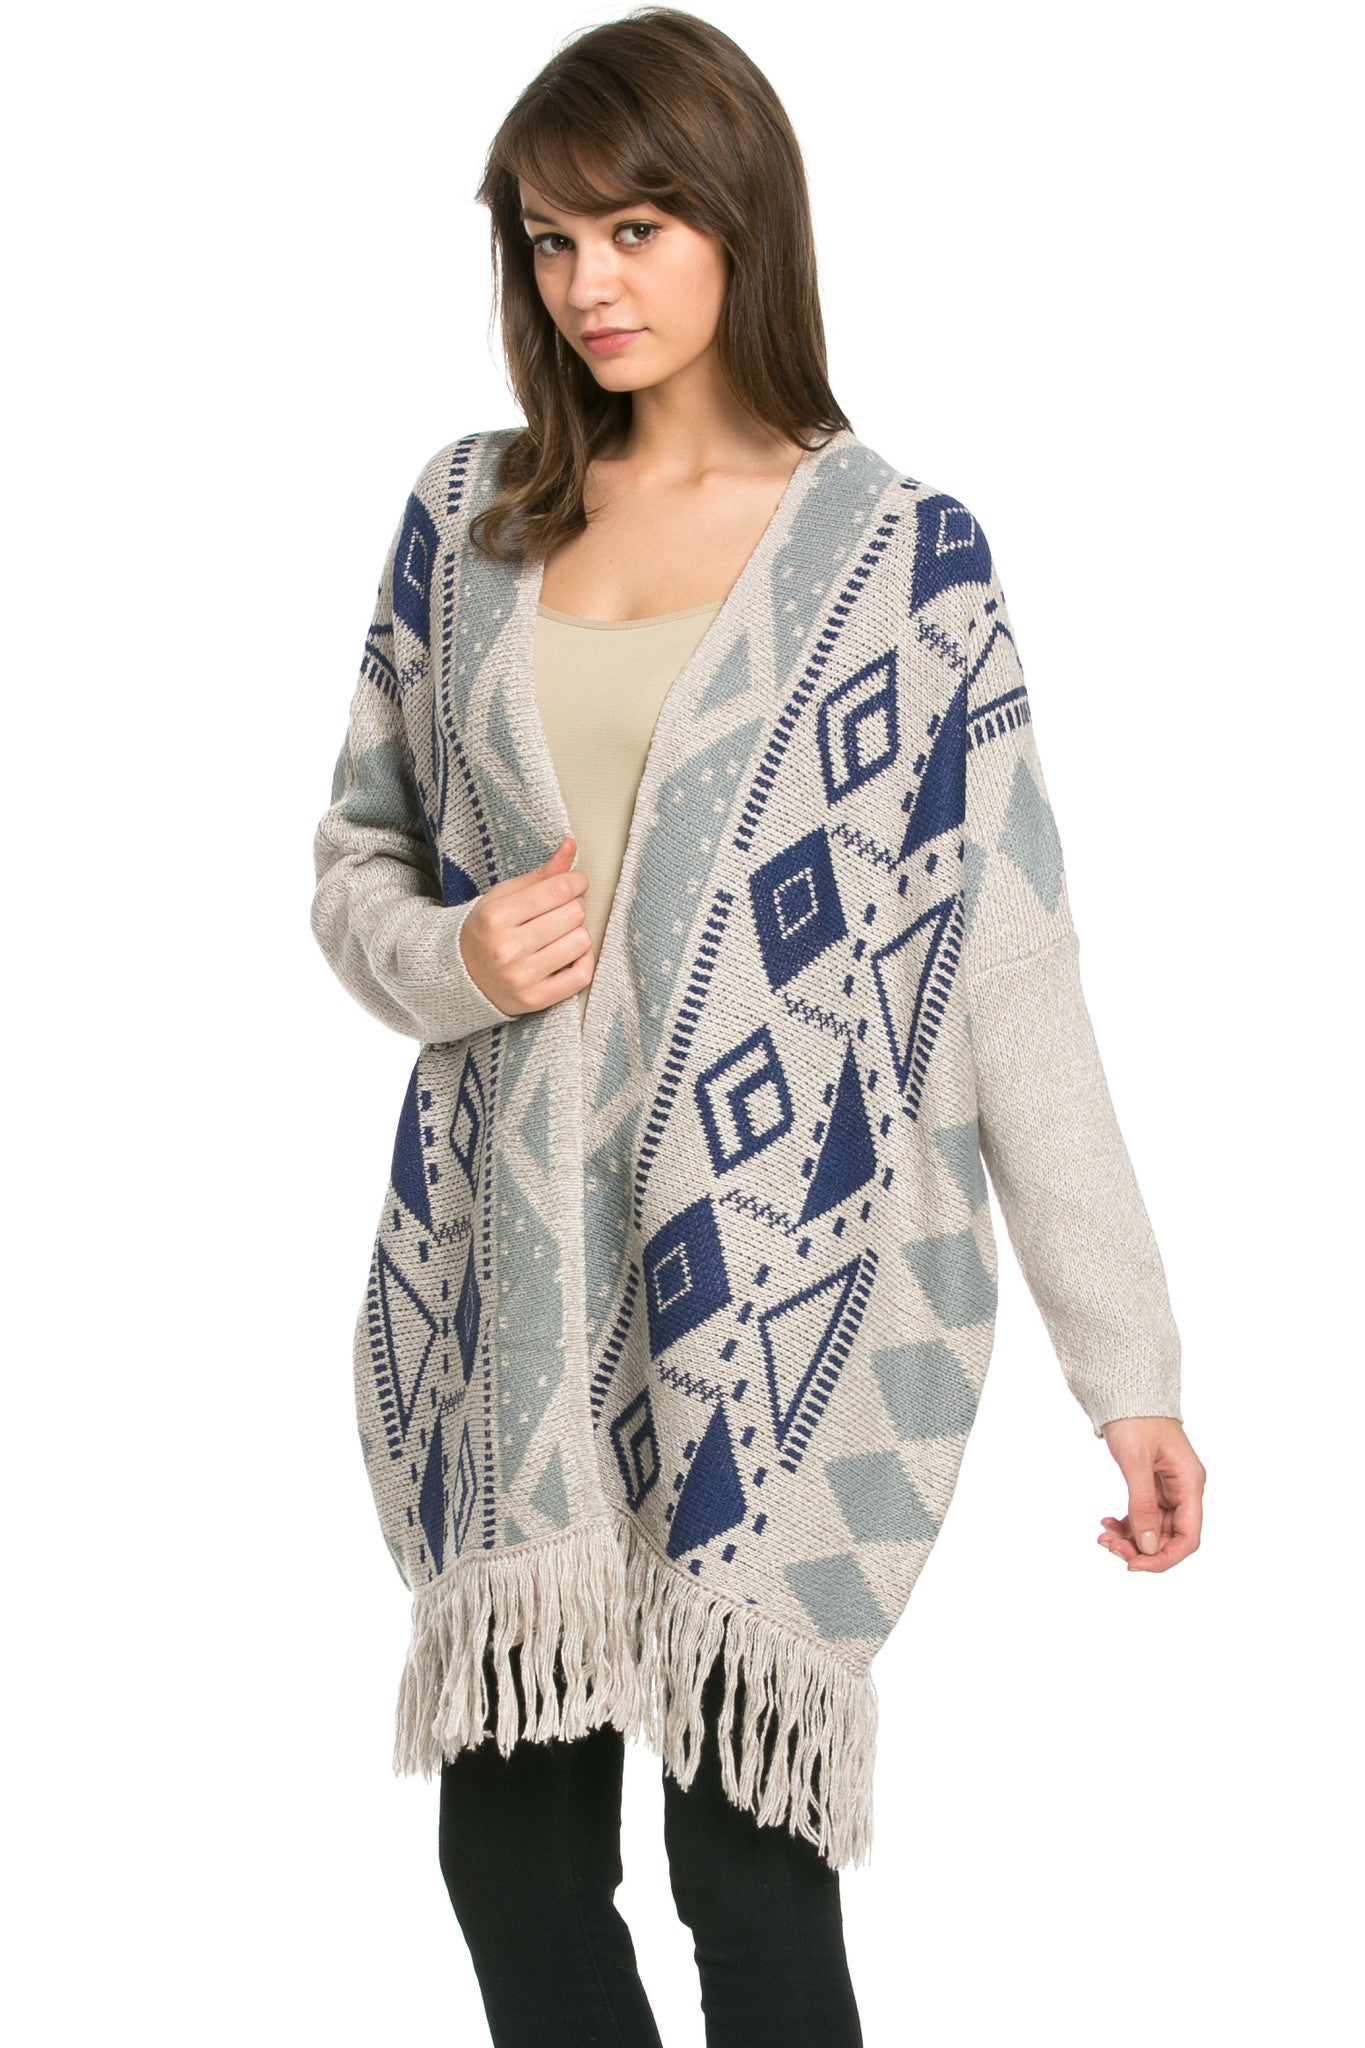 Aztec and Fringes Cardigan Taupe - Jacket - My Yuccie - 3